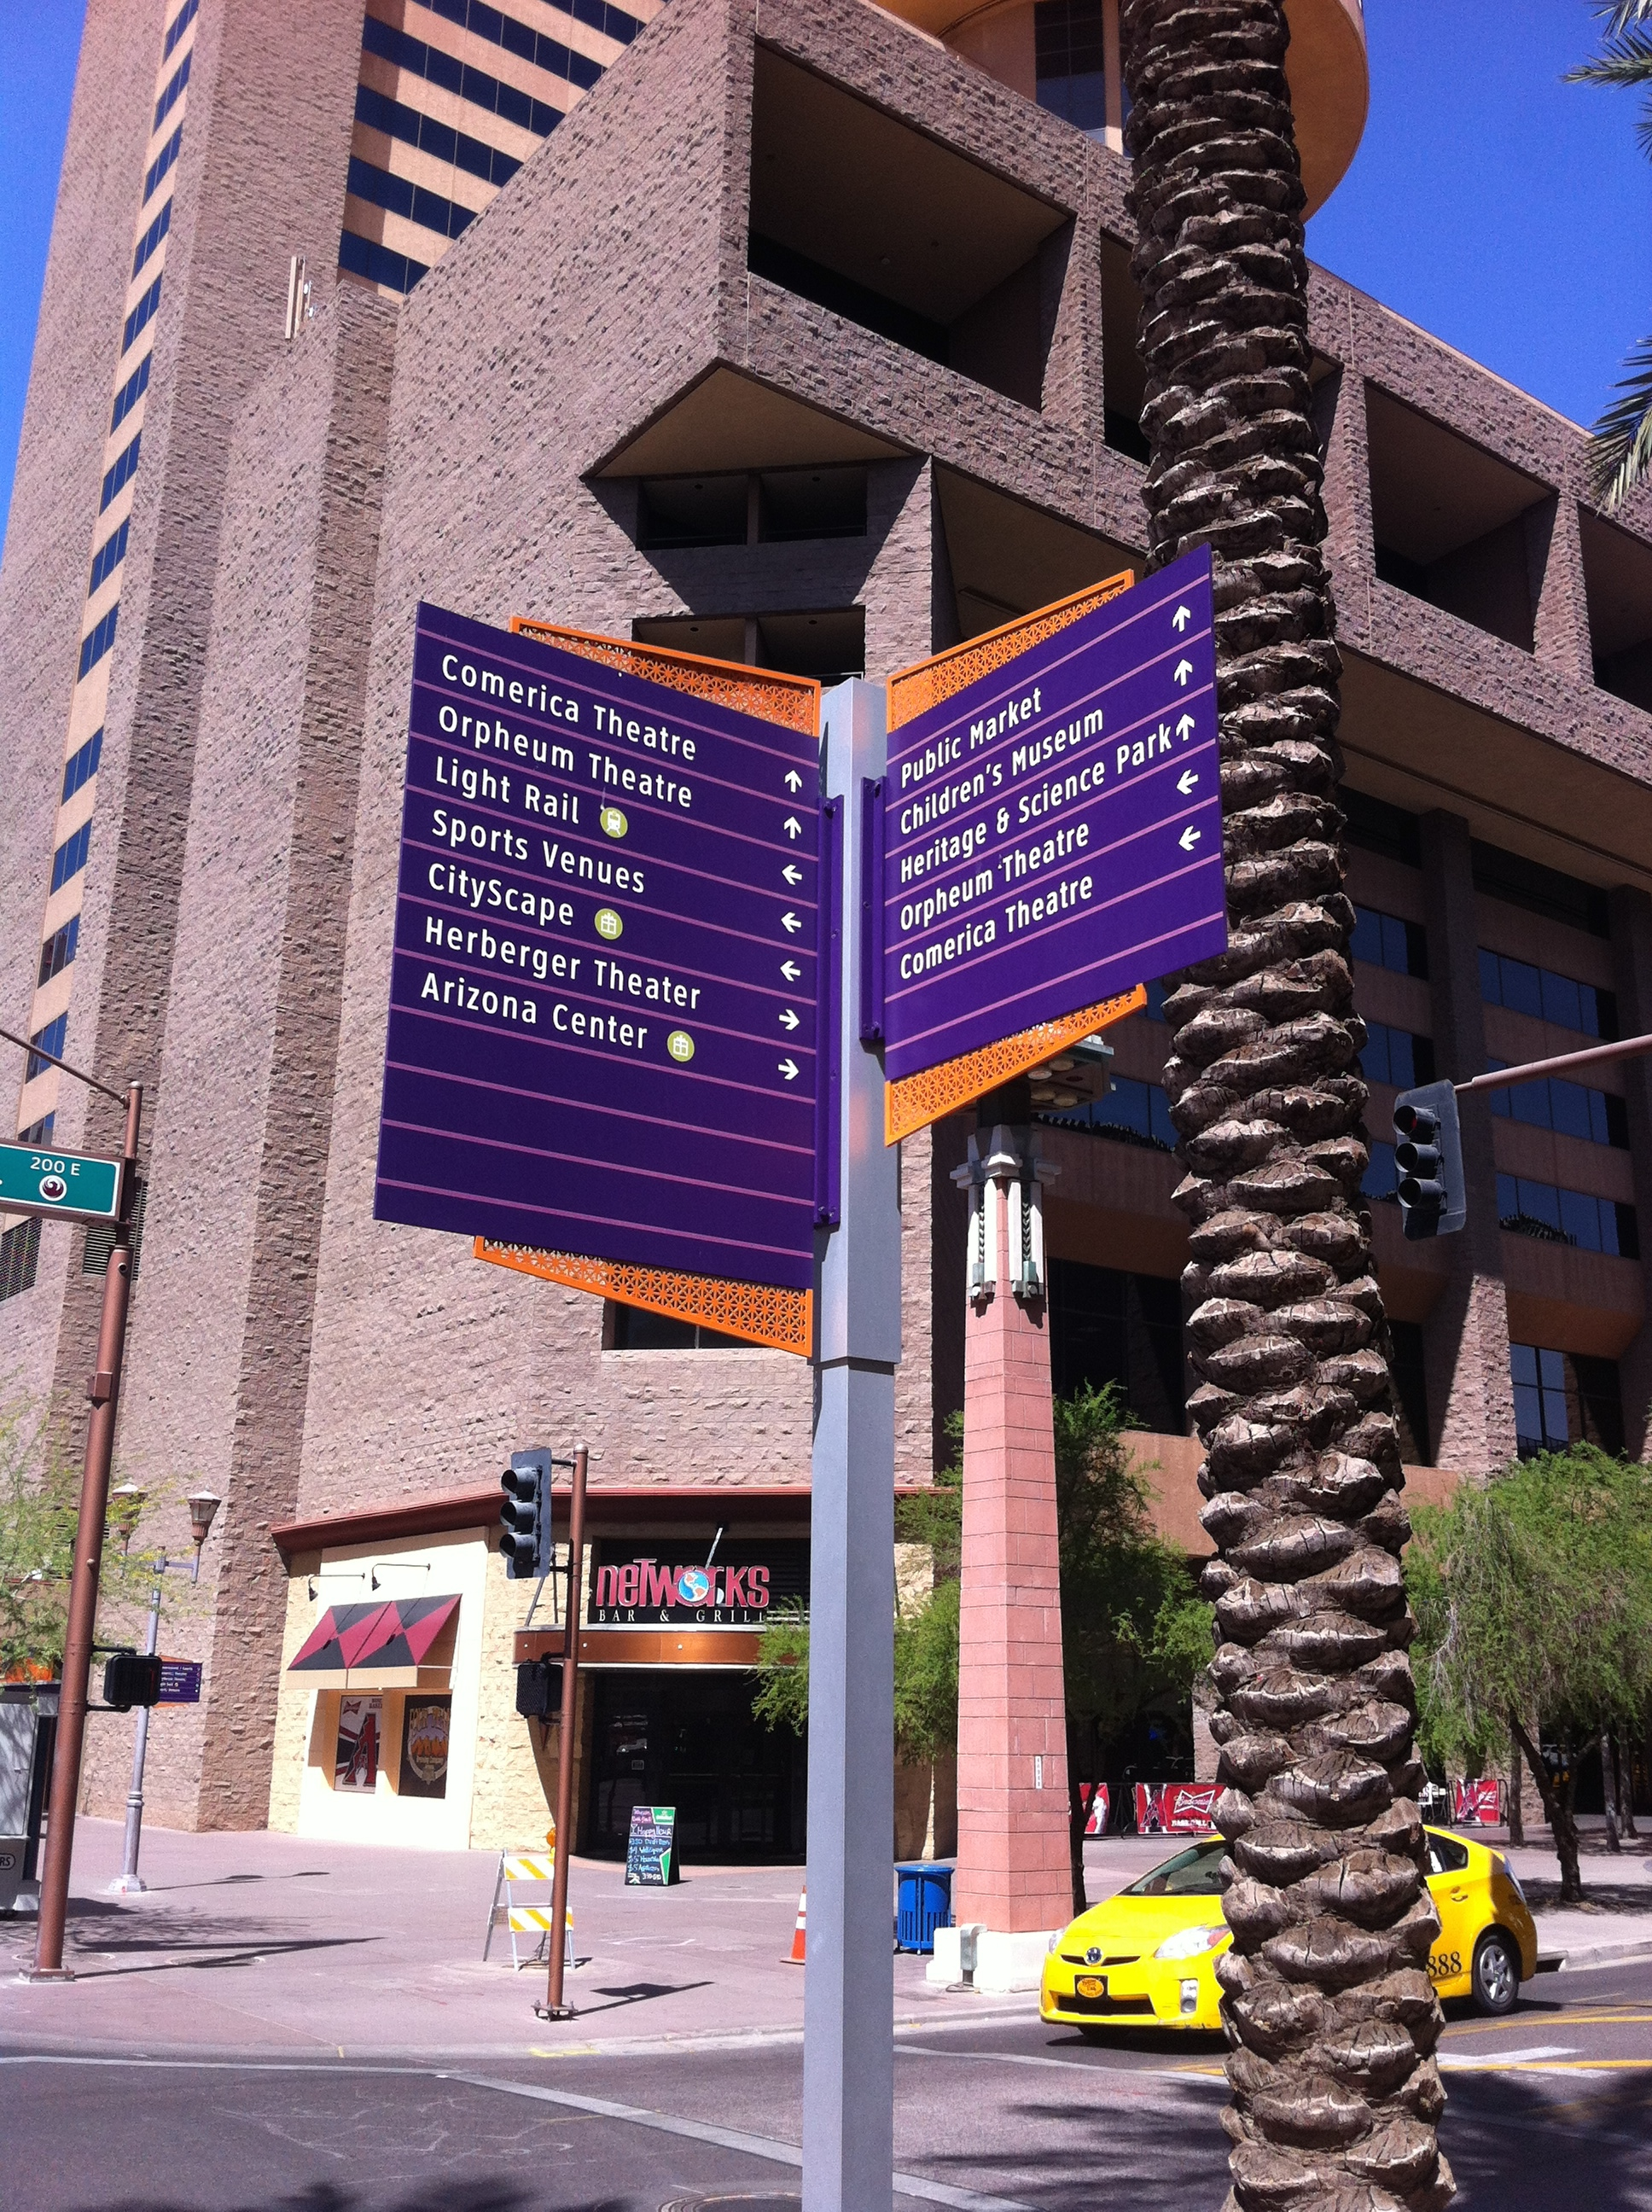 Phoenix's downtown wayfinding sign lists many attractions.